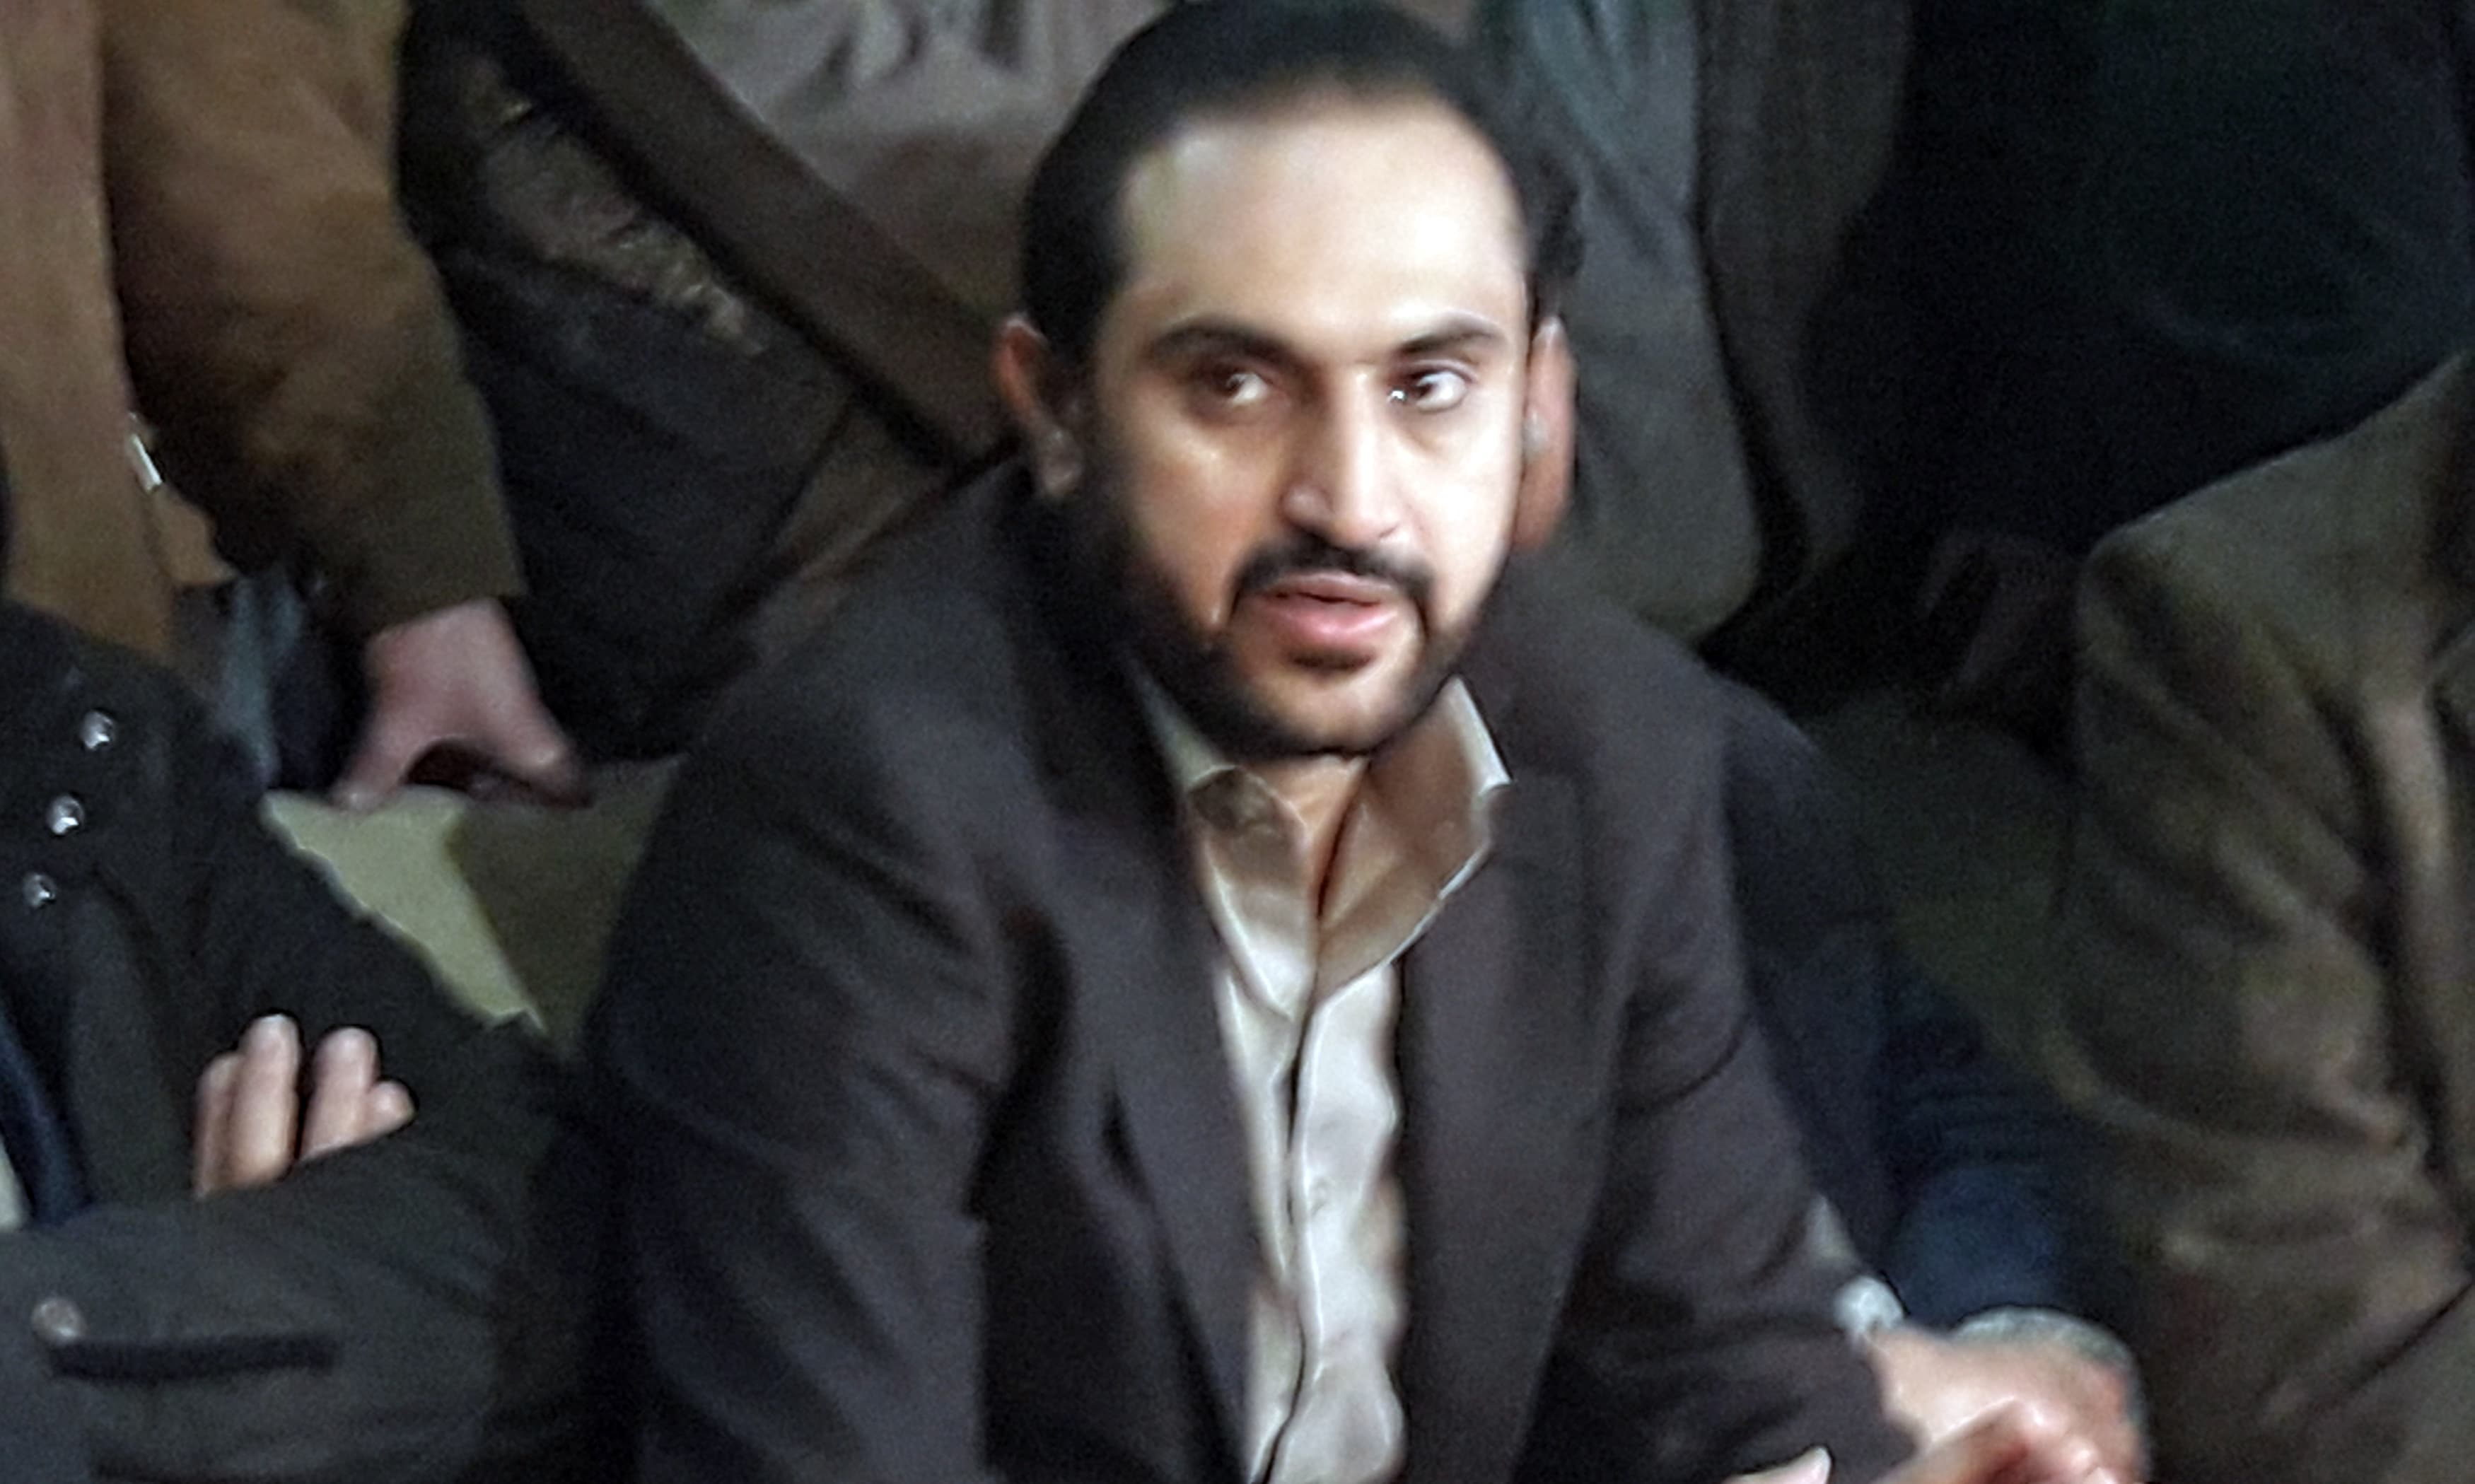 PML-Q's Bizenjo had received only 544 votes in 2013 general elections. —photo by author